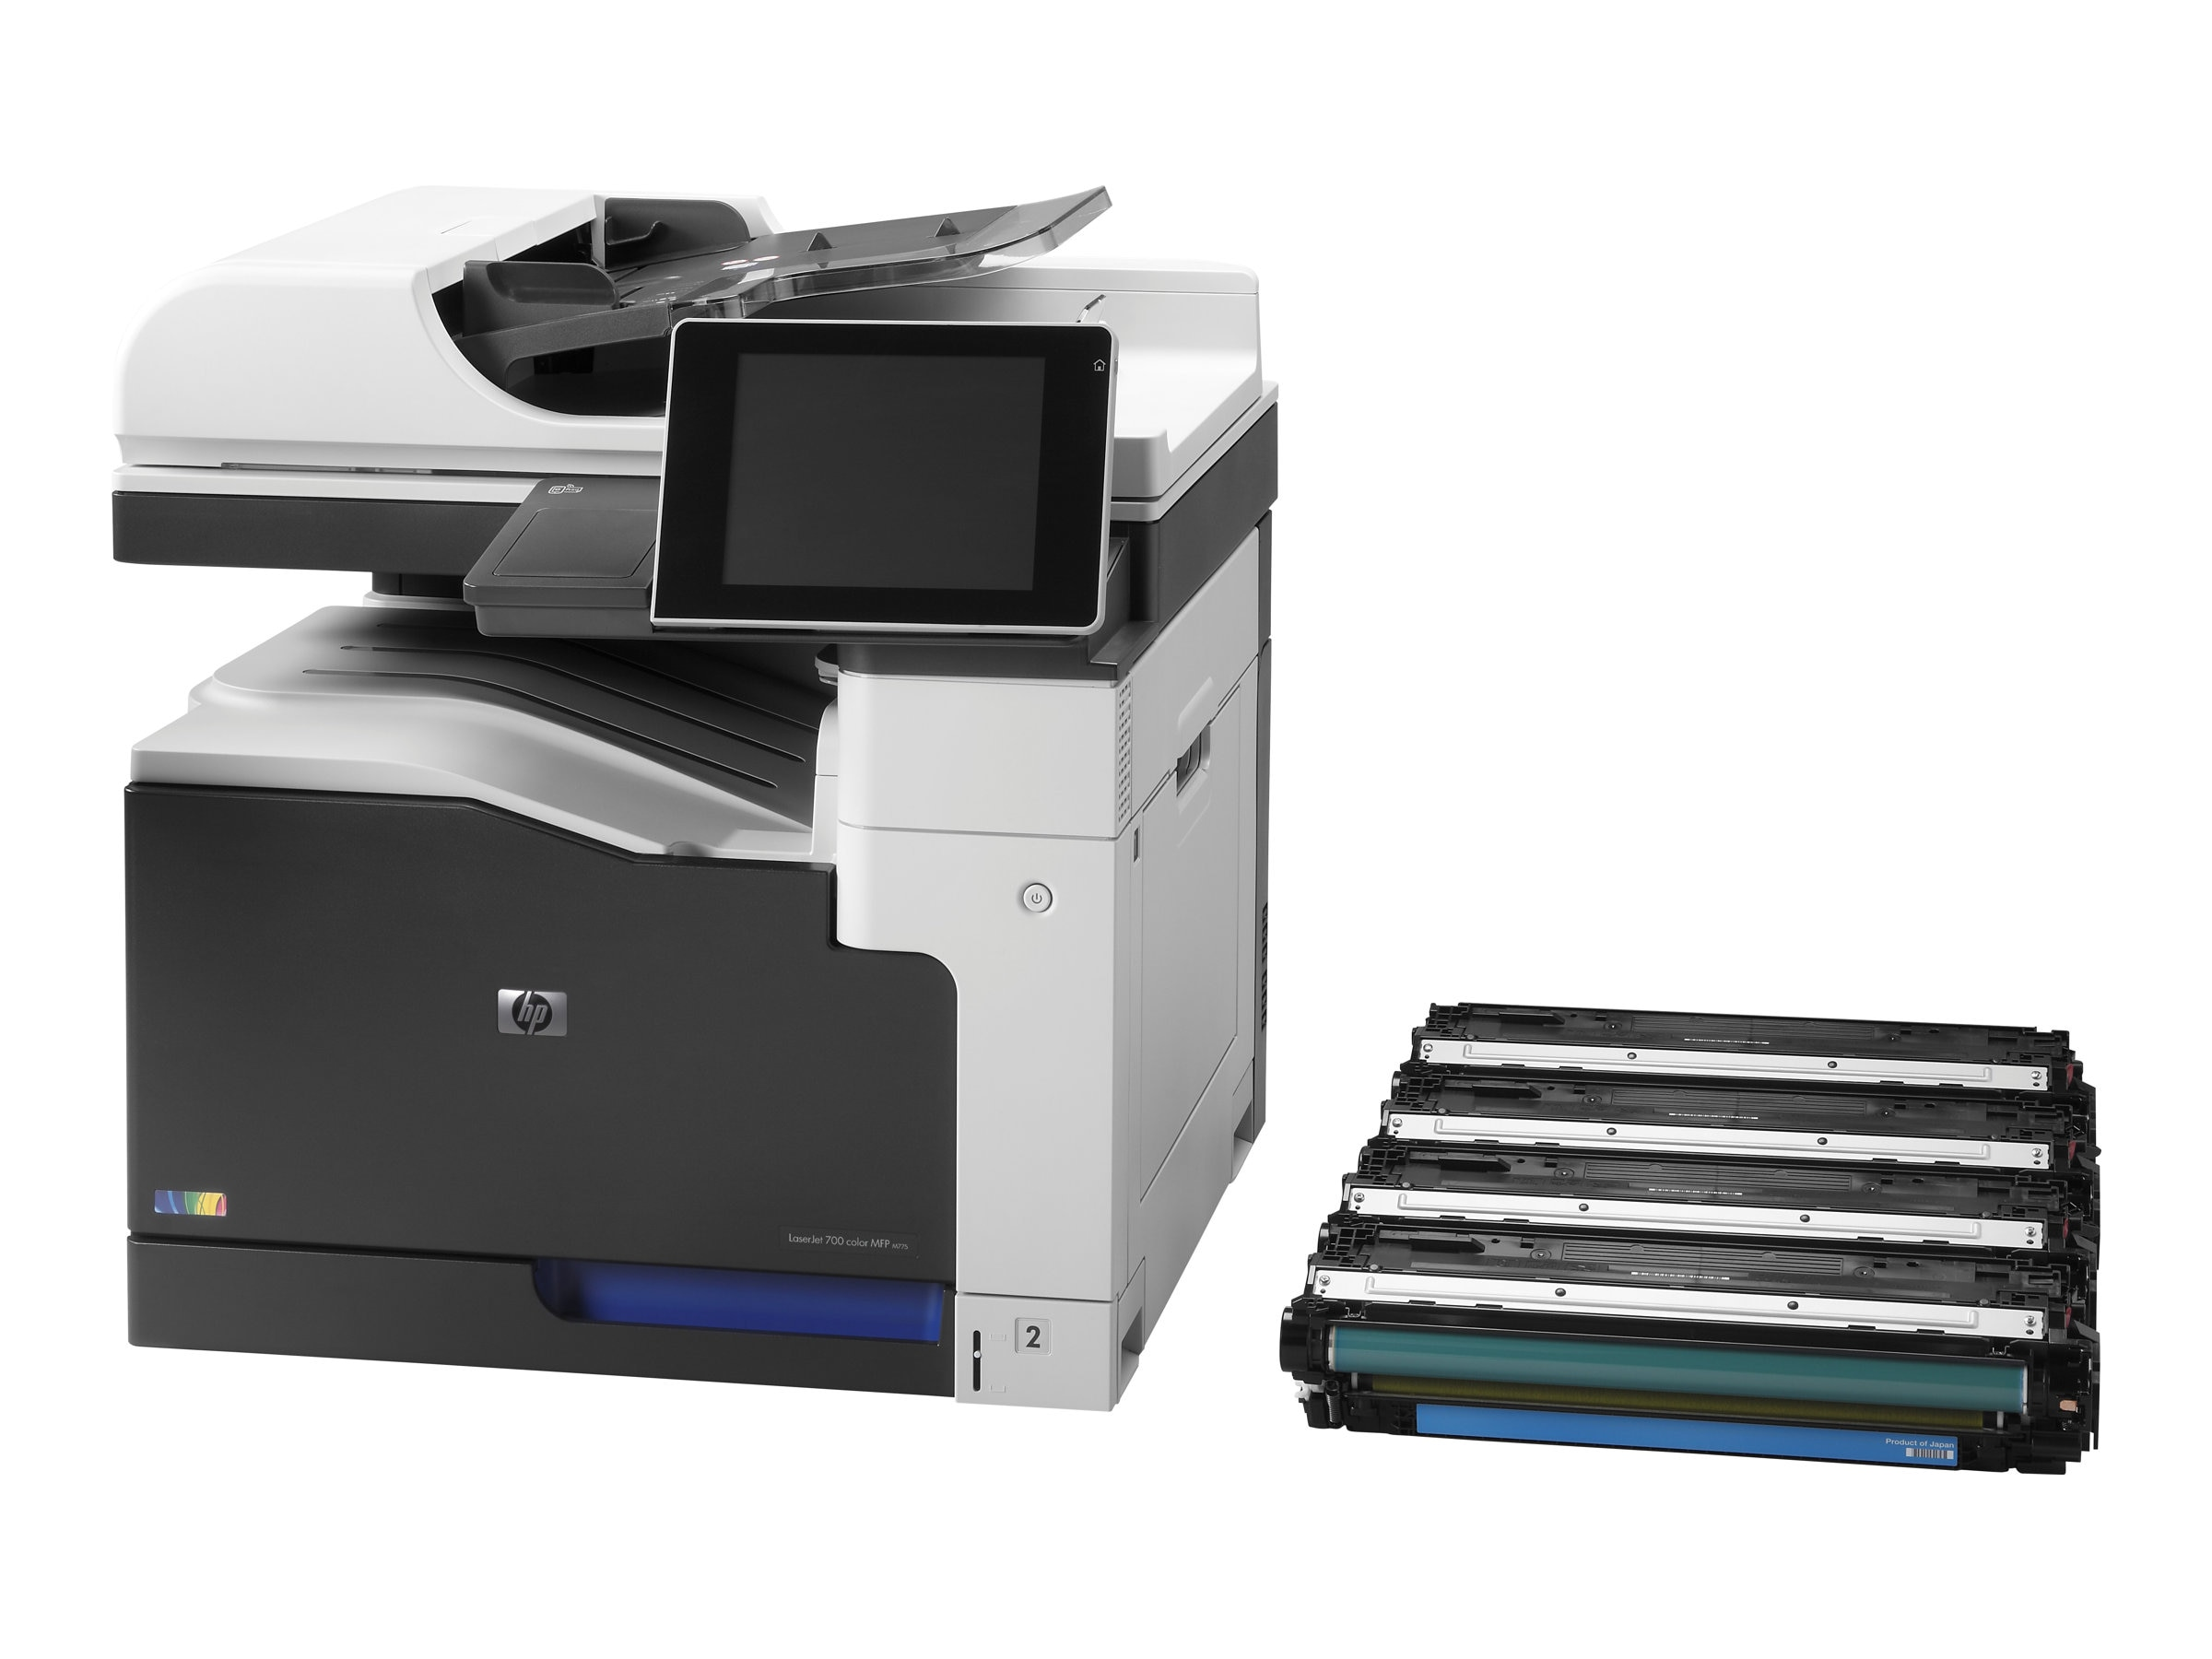 Refurb. HP LaserJet Enterprise 700 Color MFP M775z